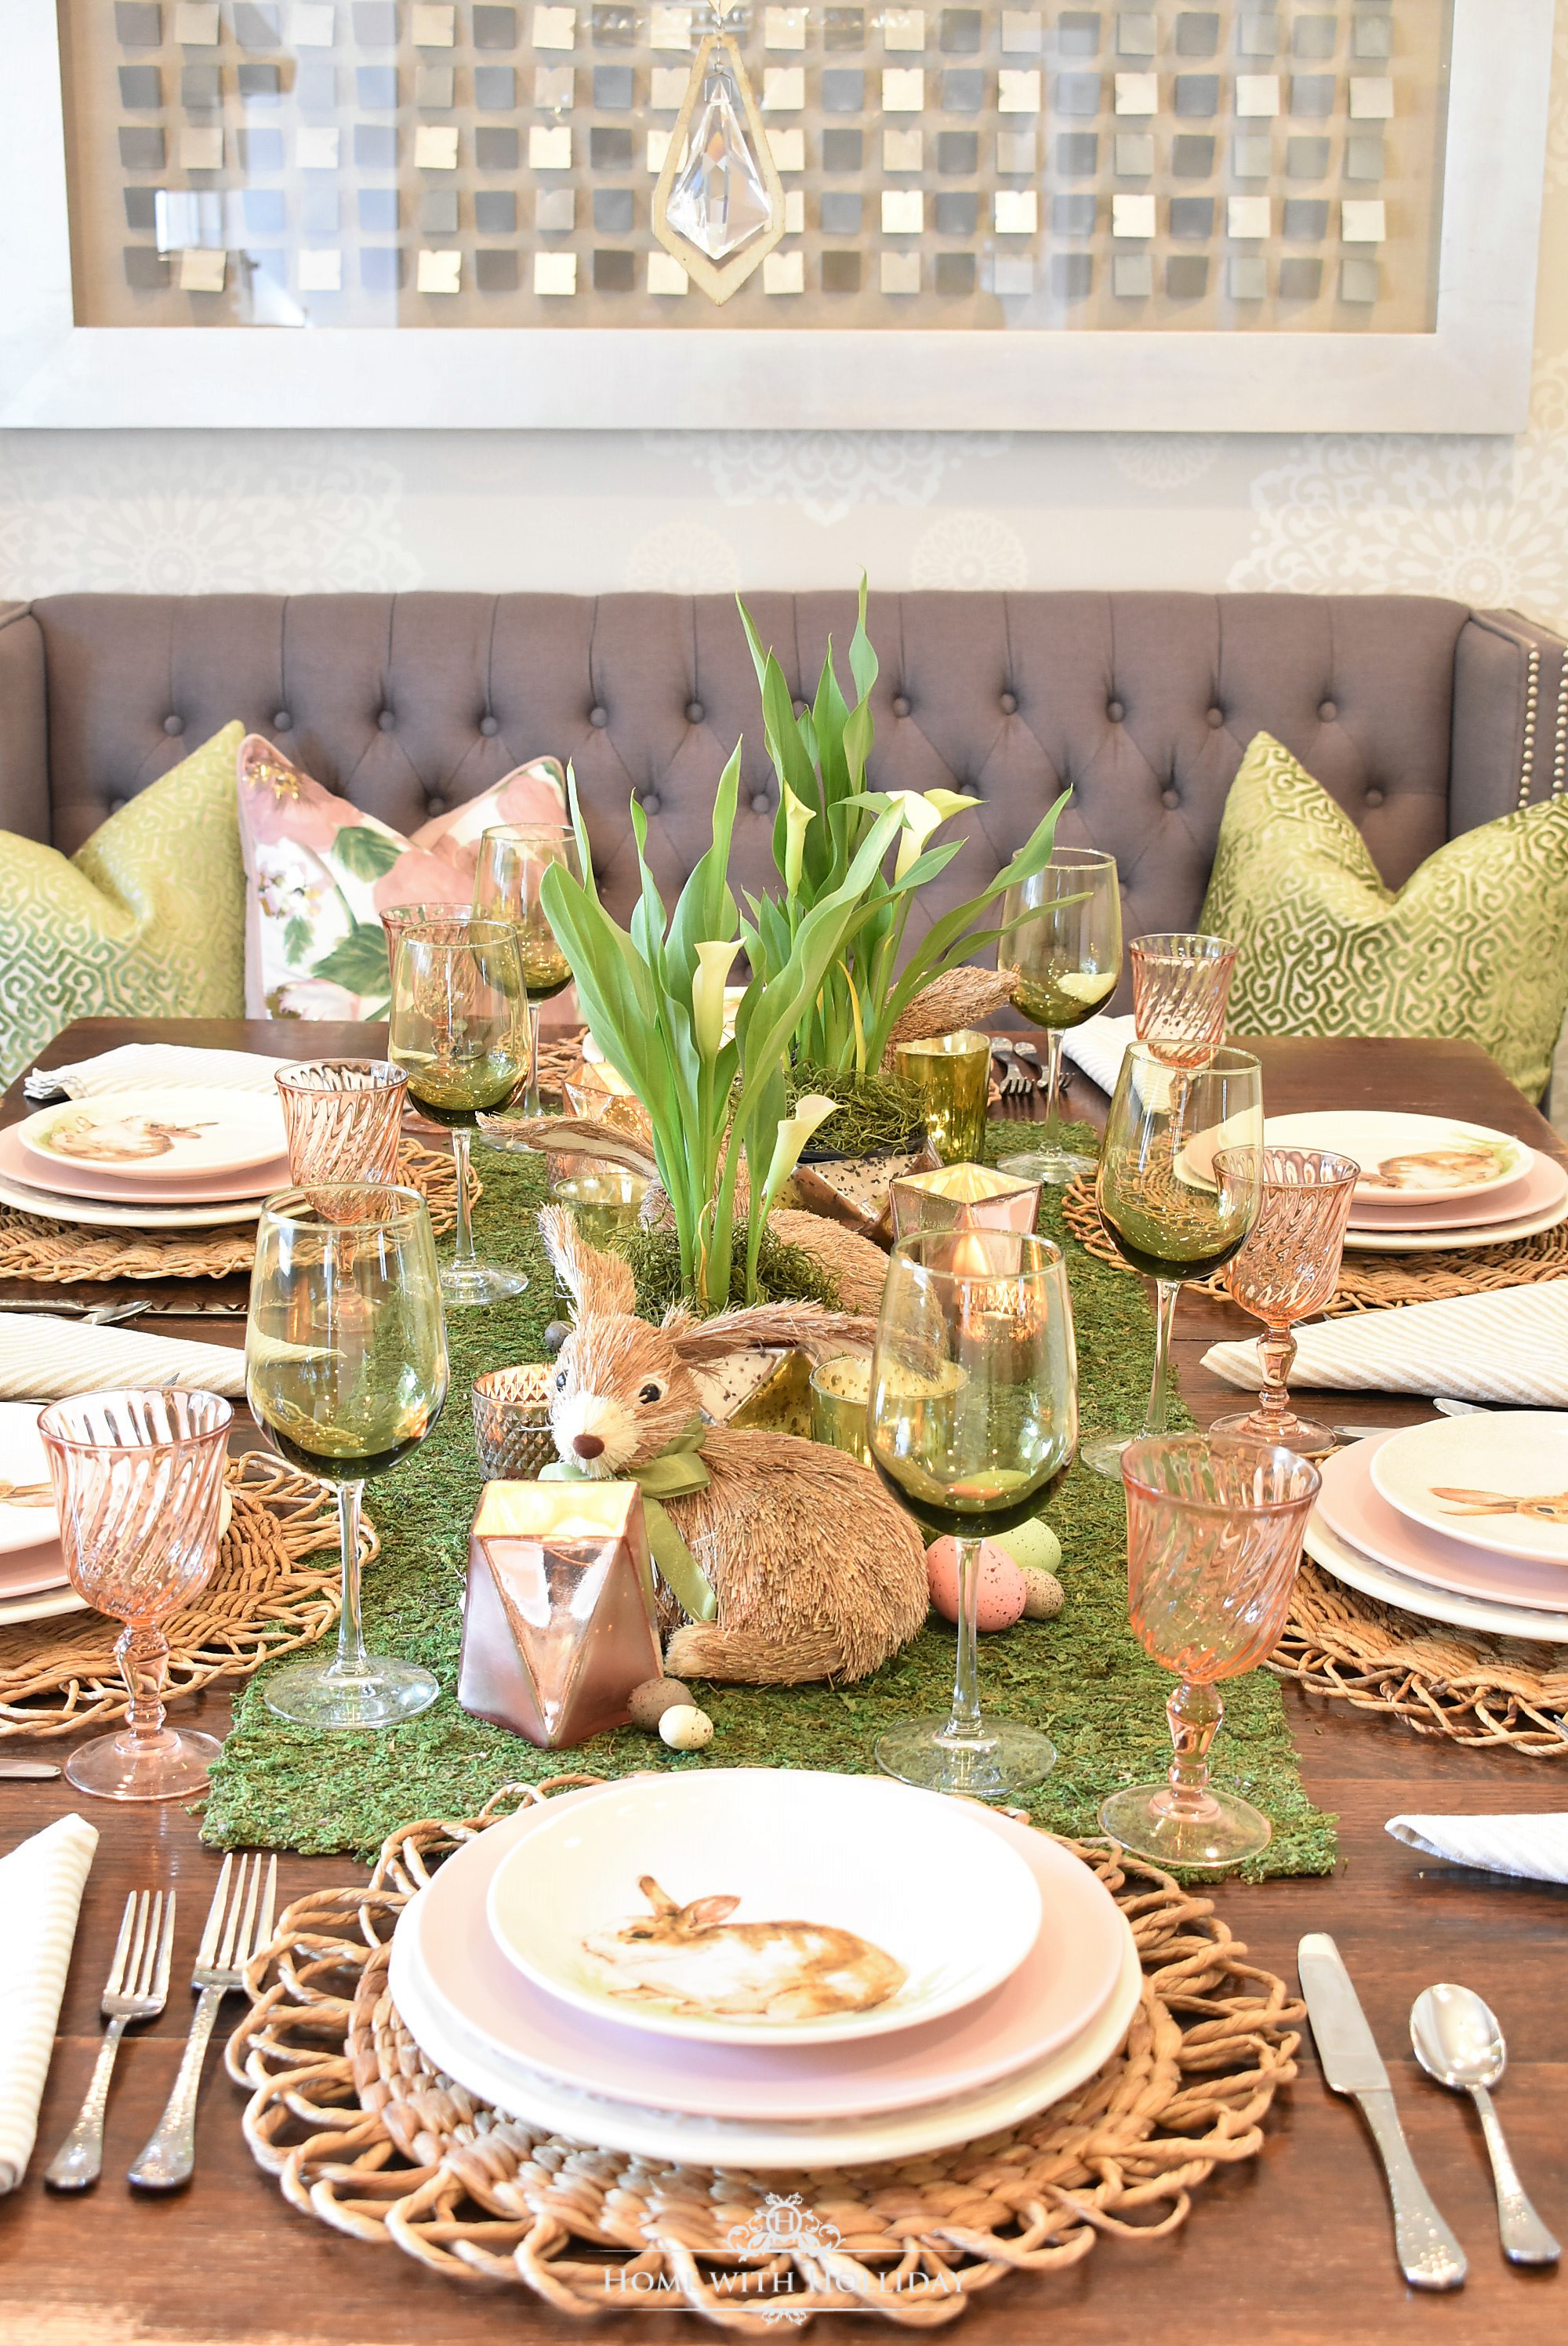 For the \u201cadult table\u201d I envisioned a clean fresh look so I settled on a green and white table setting. The green and white trellis napkins started it all ... & Green and White Easter Table Setting - Home with Holliday